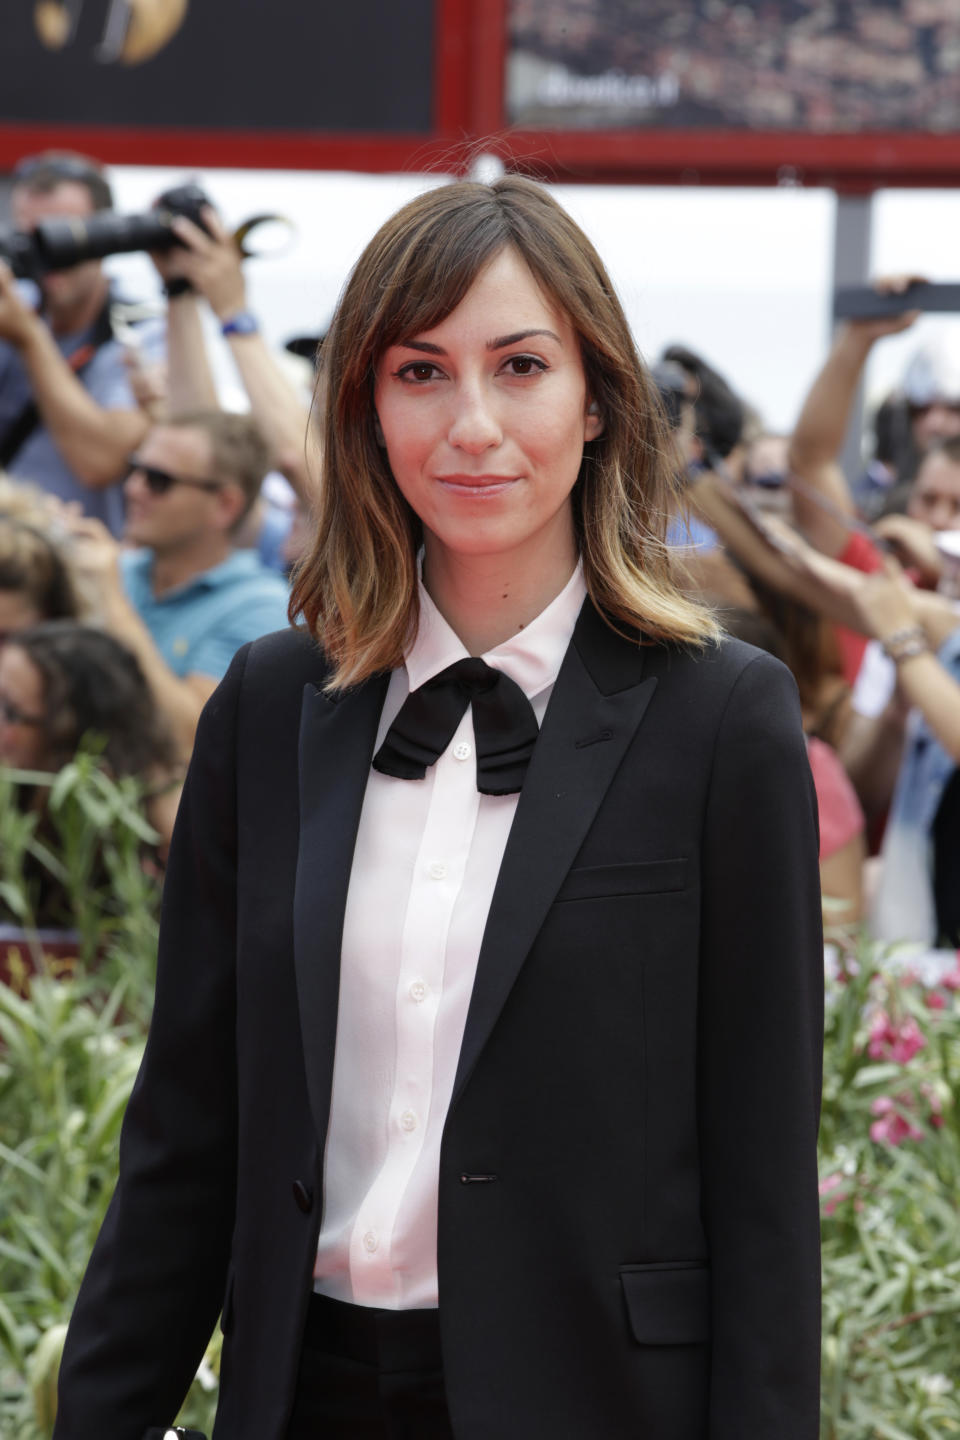 Director Gia Coppola poses for photographers as she arrives on the red carpet for the film Palo Alto at the 70th edition of the Venice Film Festival held from Aug. 28 through Sept. 7, in Venice, Italy, Sunday, Sept. 1, 2013. (AP Photo/Andrew Medichini)